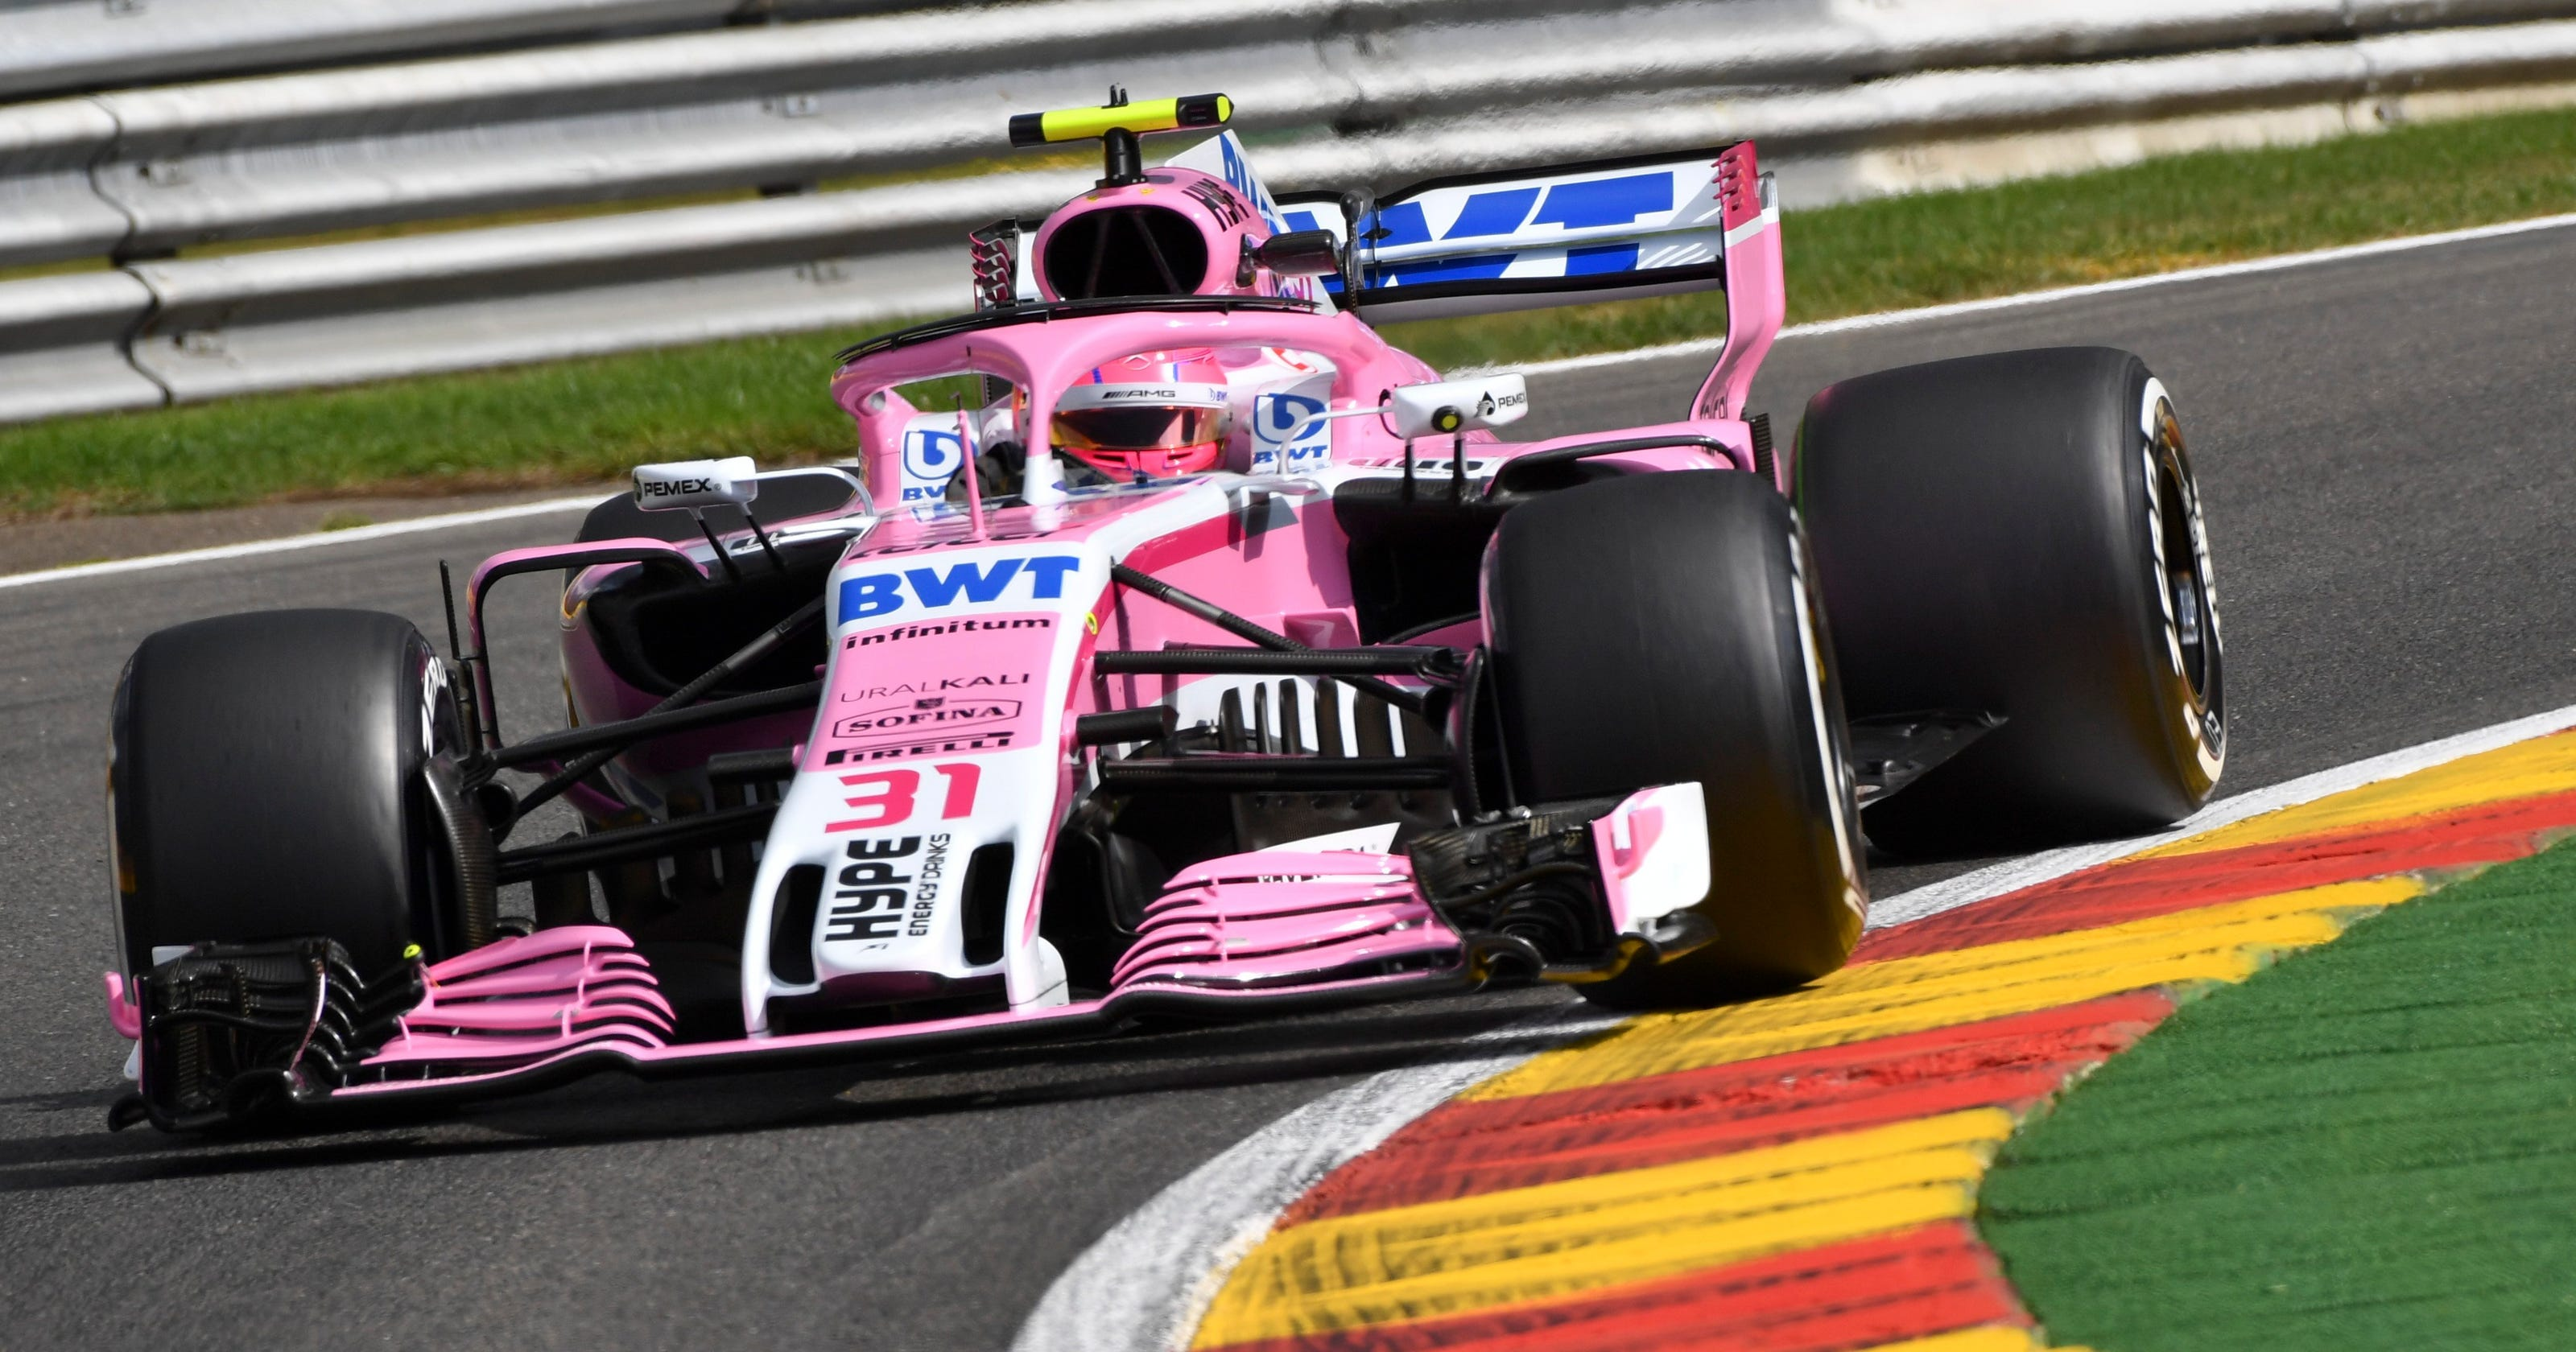 Force India to remain in F1 under new name after takeover